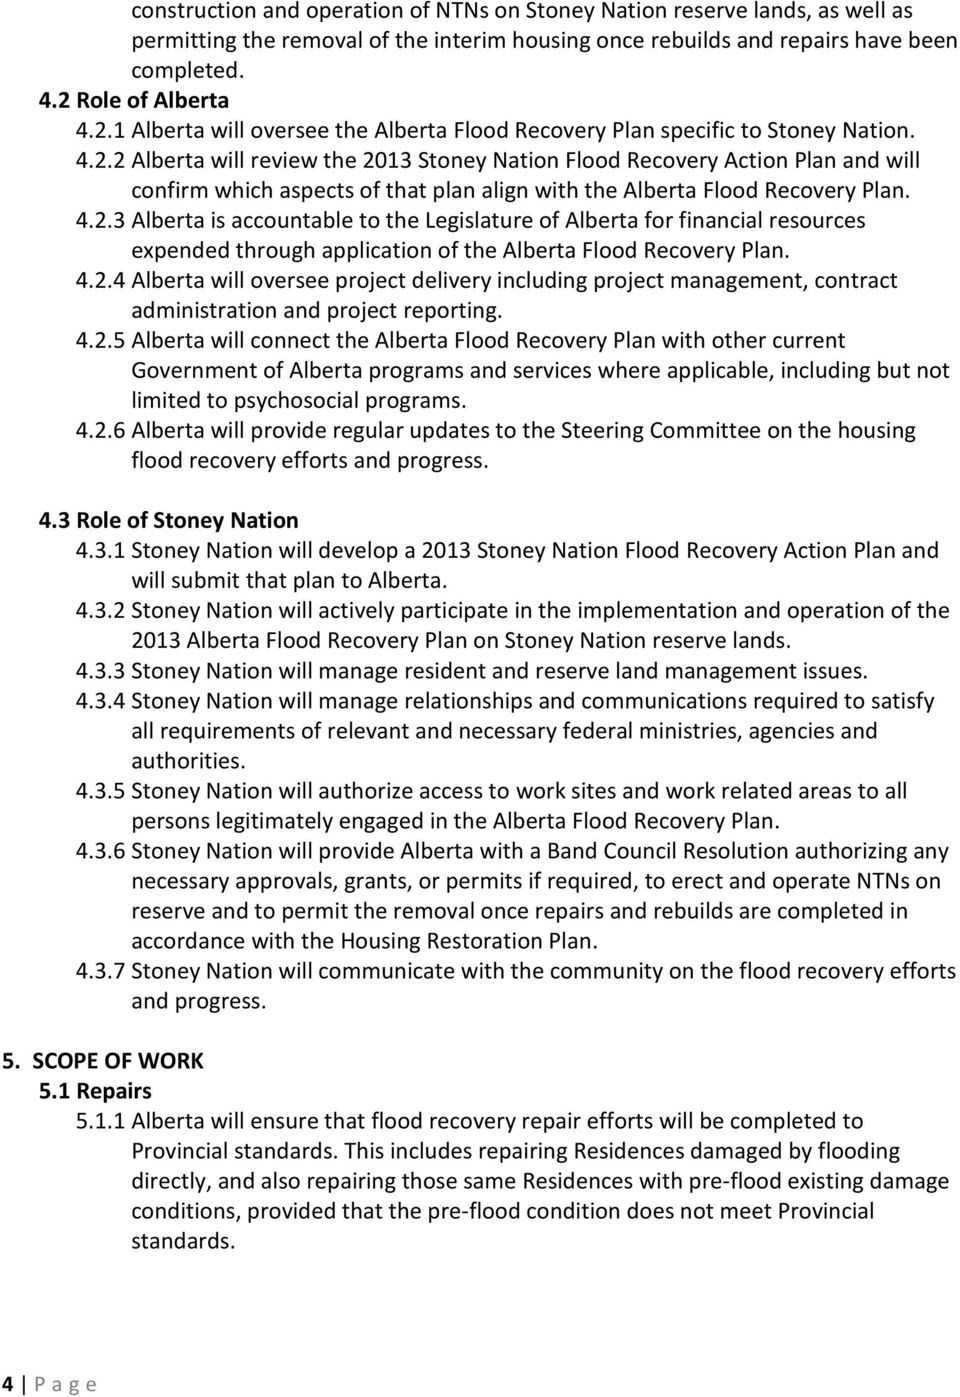 4.2.3 Alberta is accountable to the Legislature of Alberta for financial resources expended through application of the Alberta Flood Recovery Plan. 4.2.4 Alberta will oversee project delivery including project management, contract administration and project reporting.